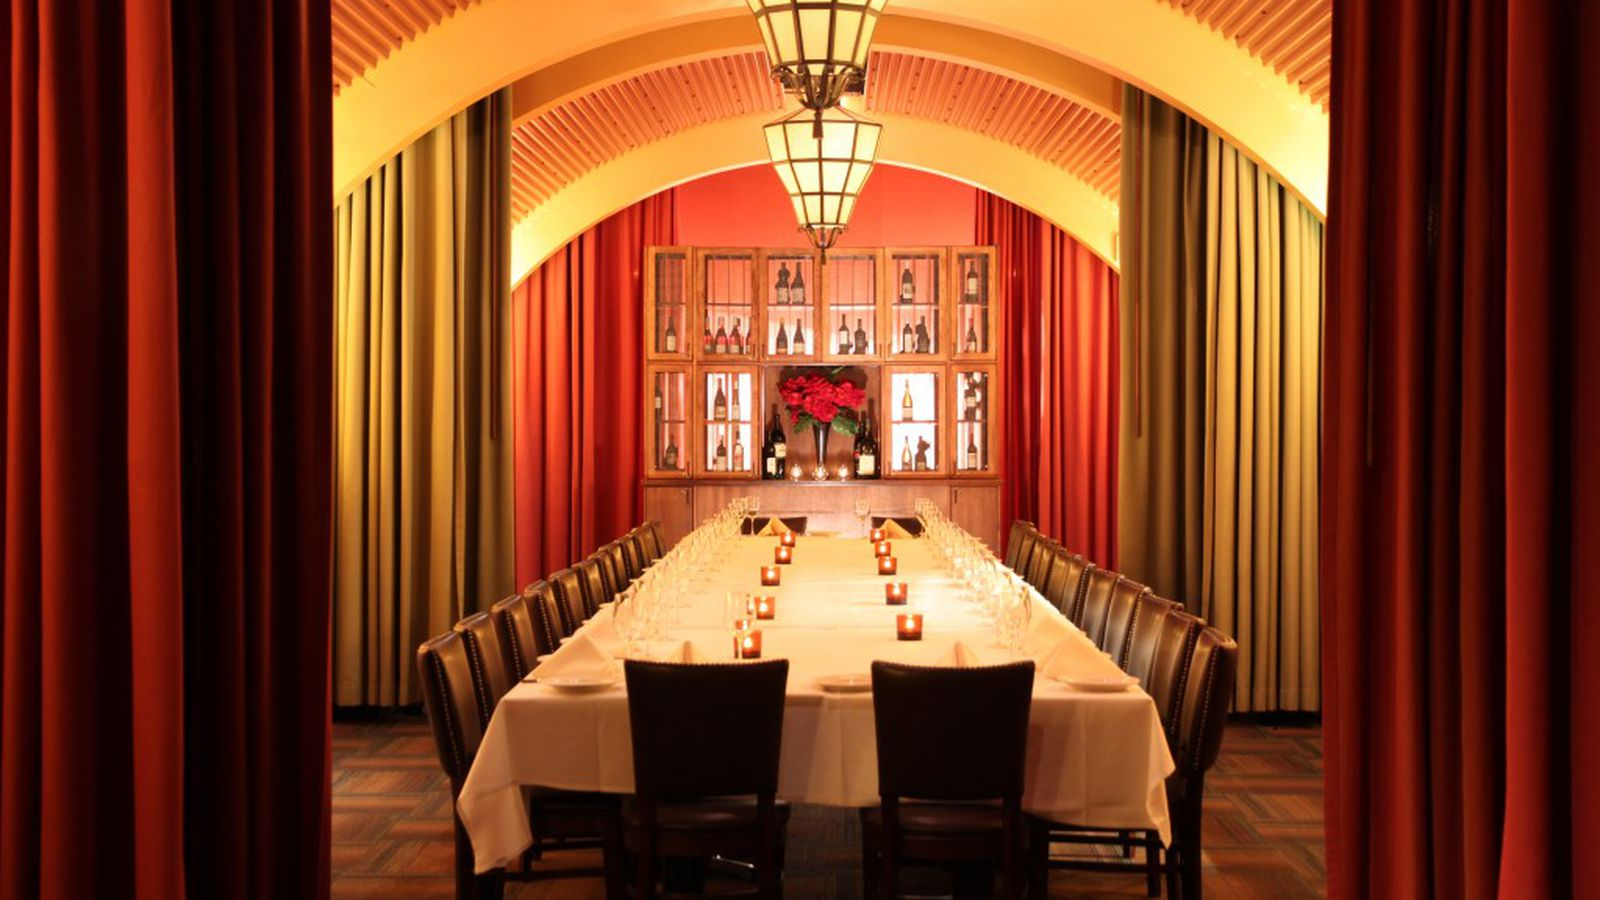 private dining rooms portland | Top Portland Restaurants with Great Private Dining Rooms ...